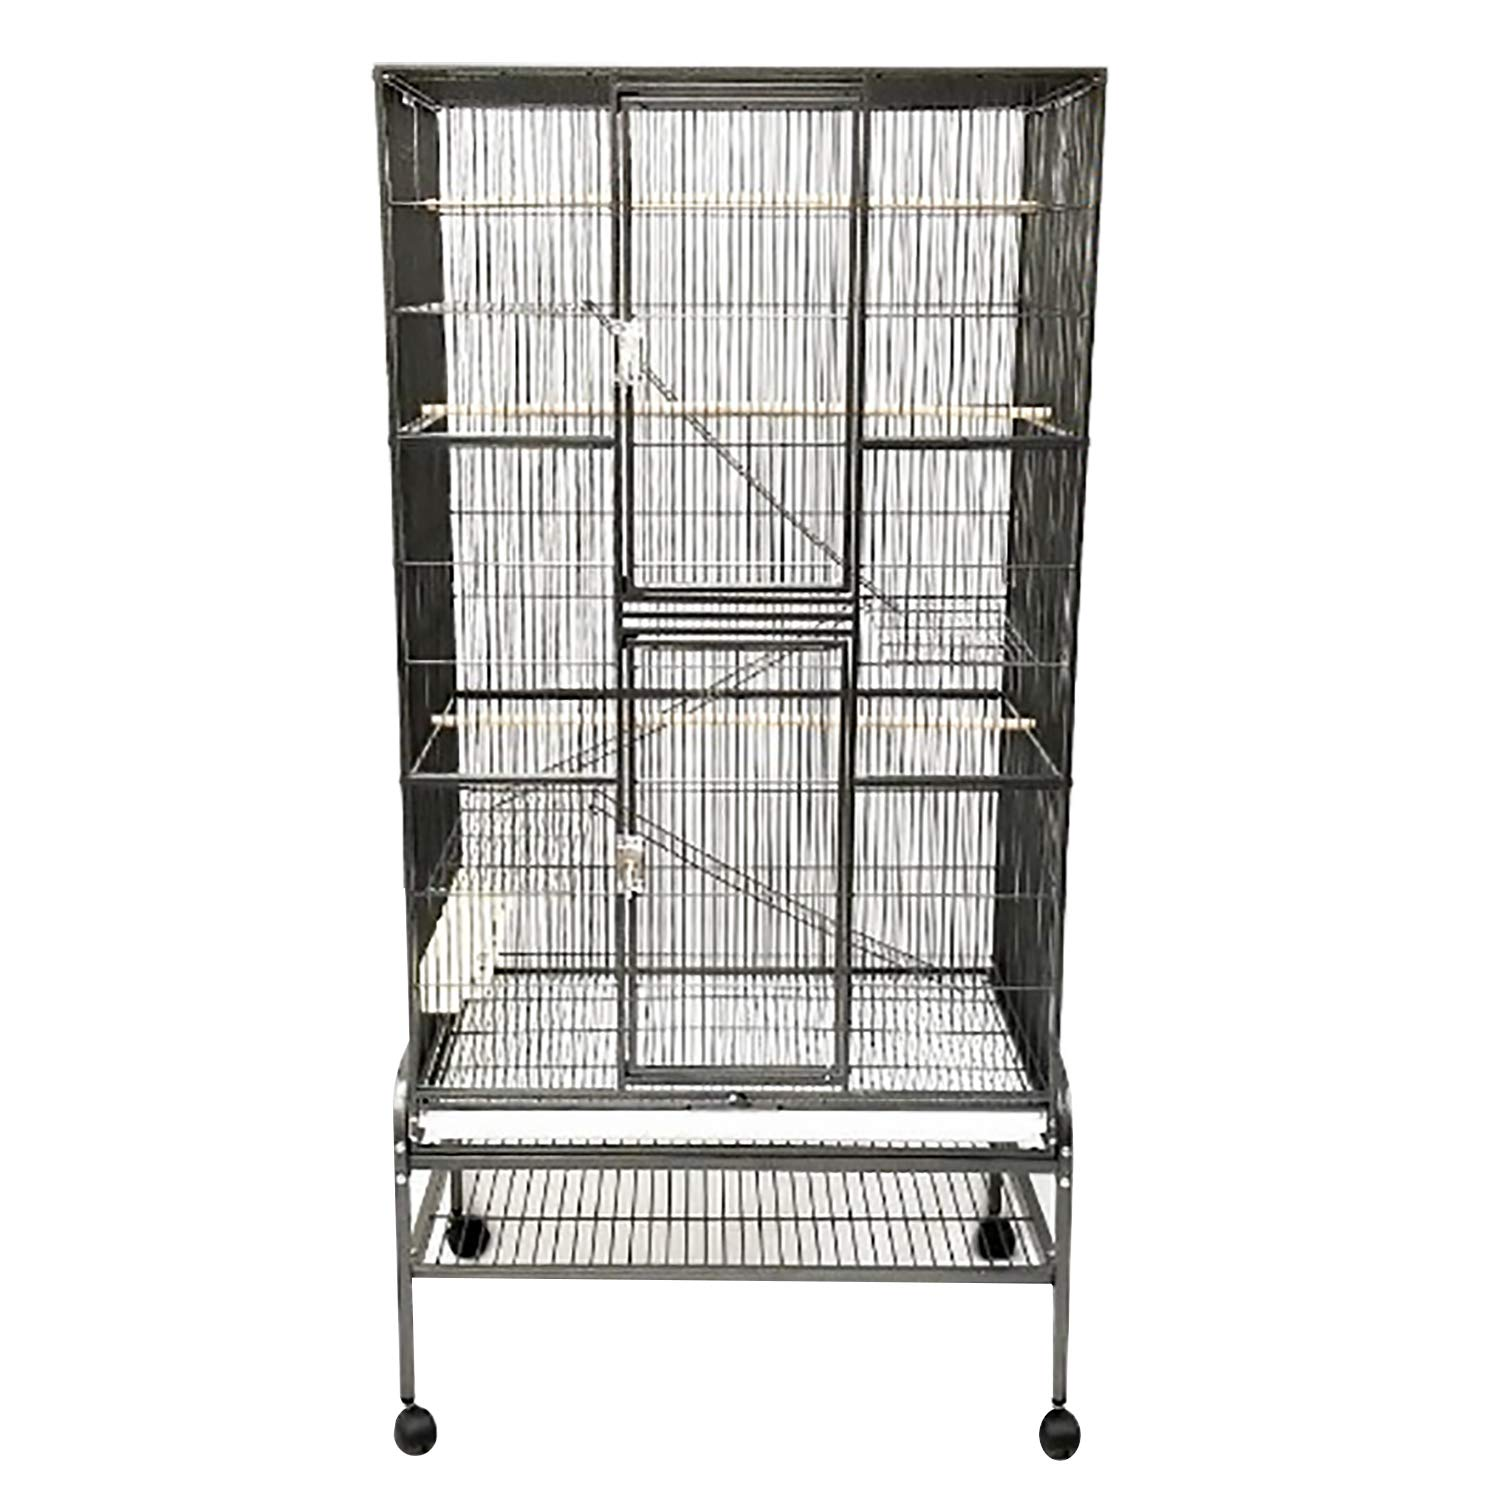 Exotic Nutrition Congo Cage - Durable 68'' Tall Cage - for Sugar Gliders, Squirrels, Marmosets & Other Small Pets by Exotic Nutrition